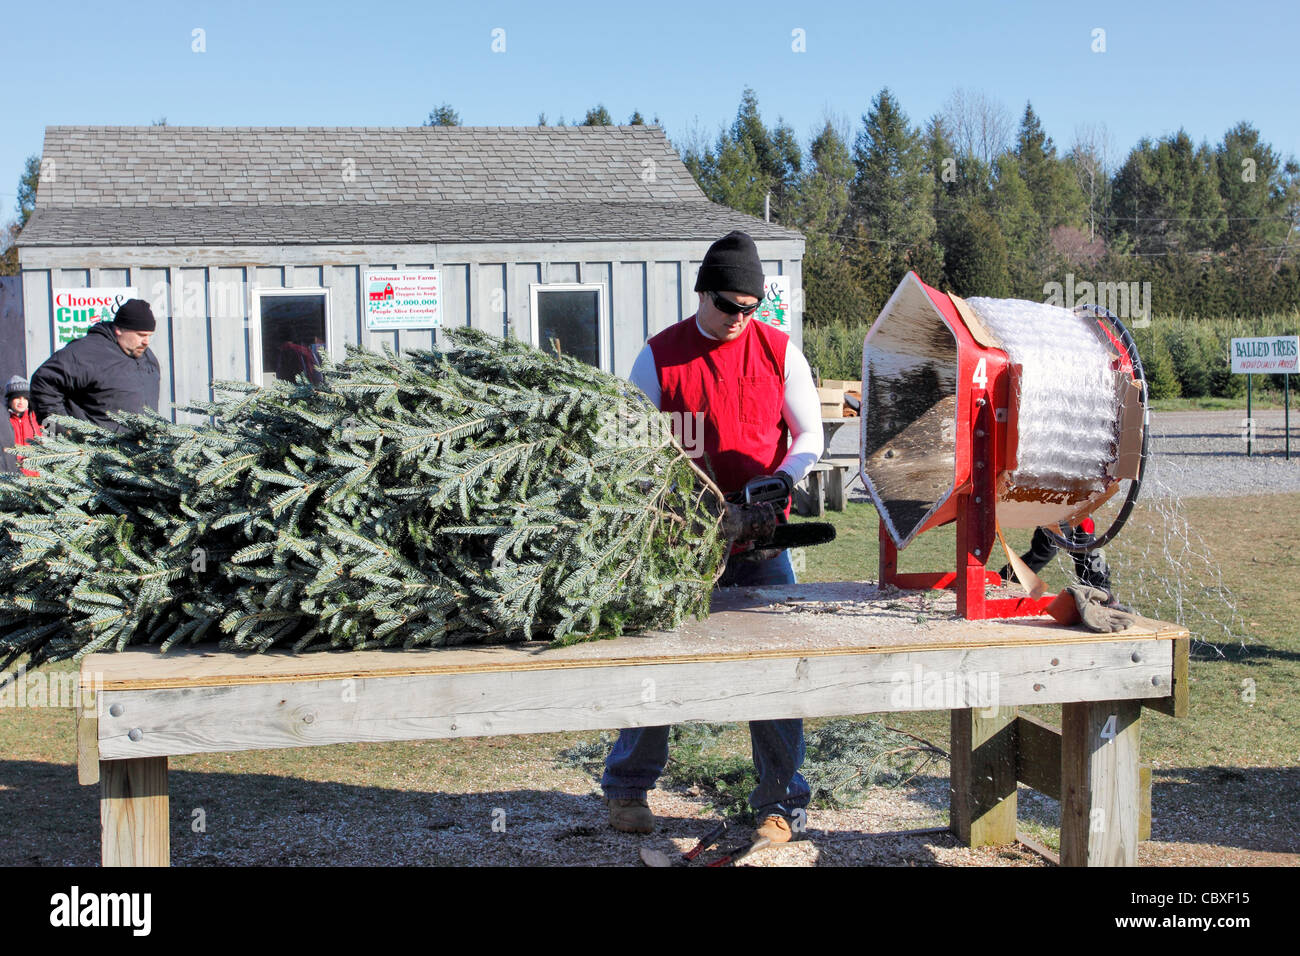 Cut Your Own Christmas Tree Long Island.Cutting Your Own Christmas Tree Stock Photos Cutting Your